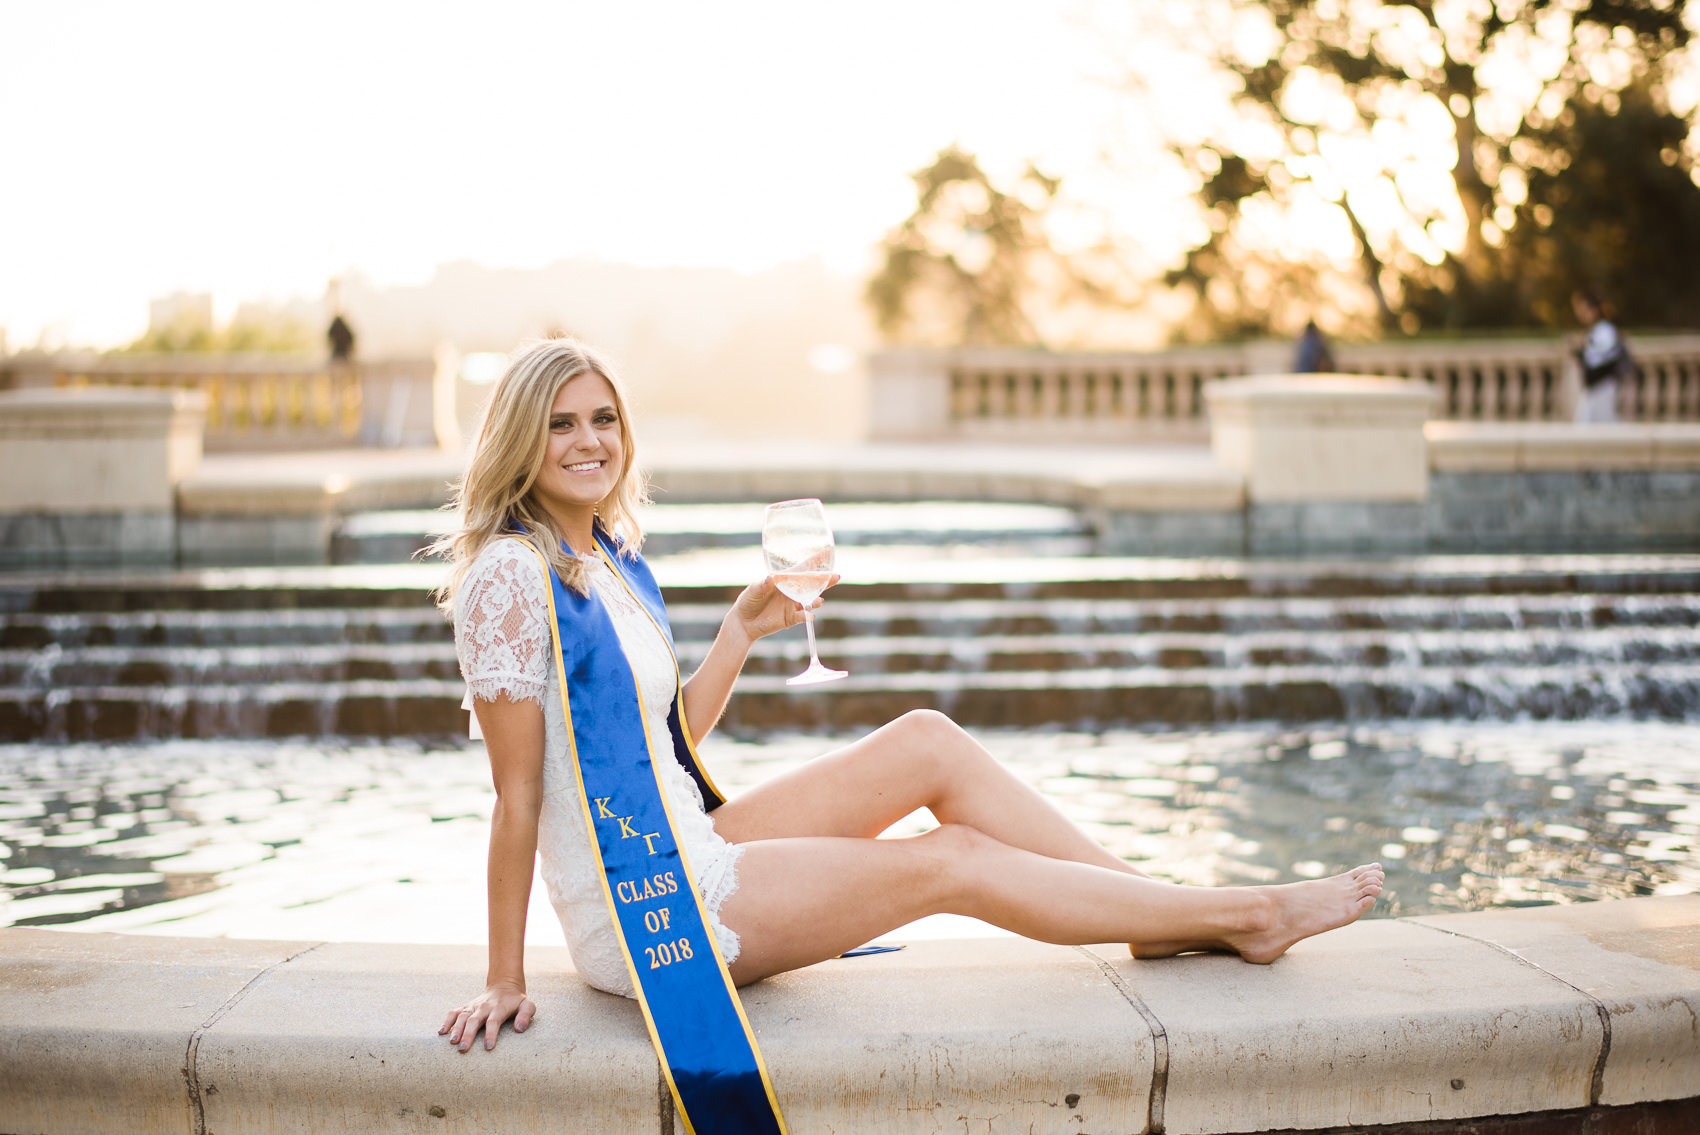 portrait of a sommelier girl holding a wine glass in graduation apparel at ucla shapiro fountain